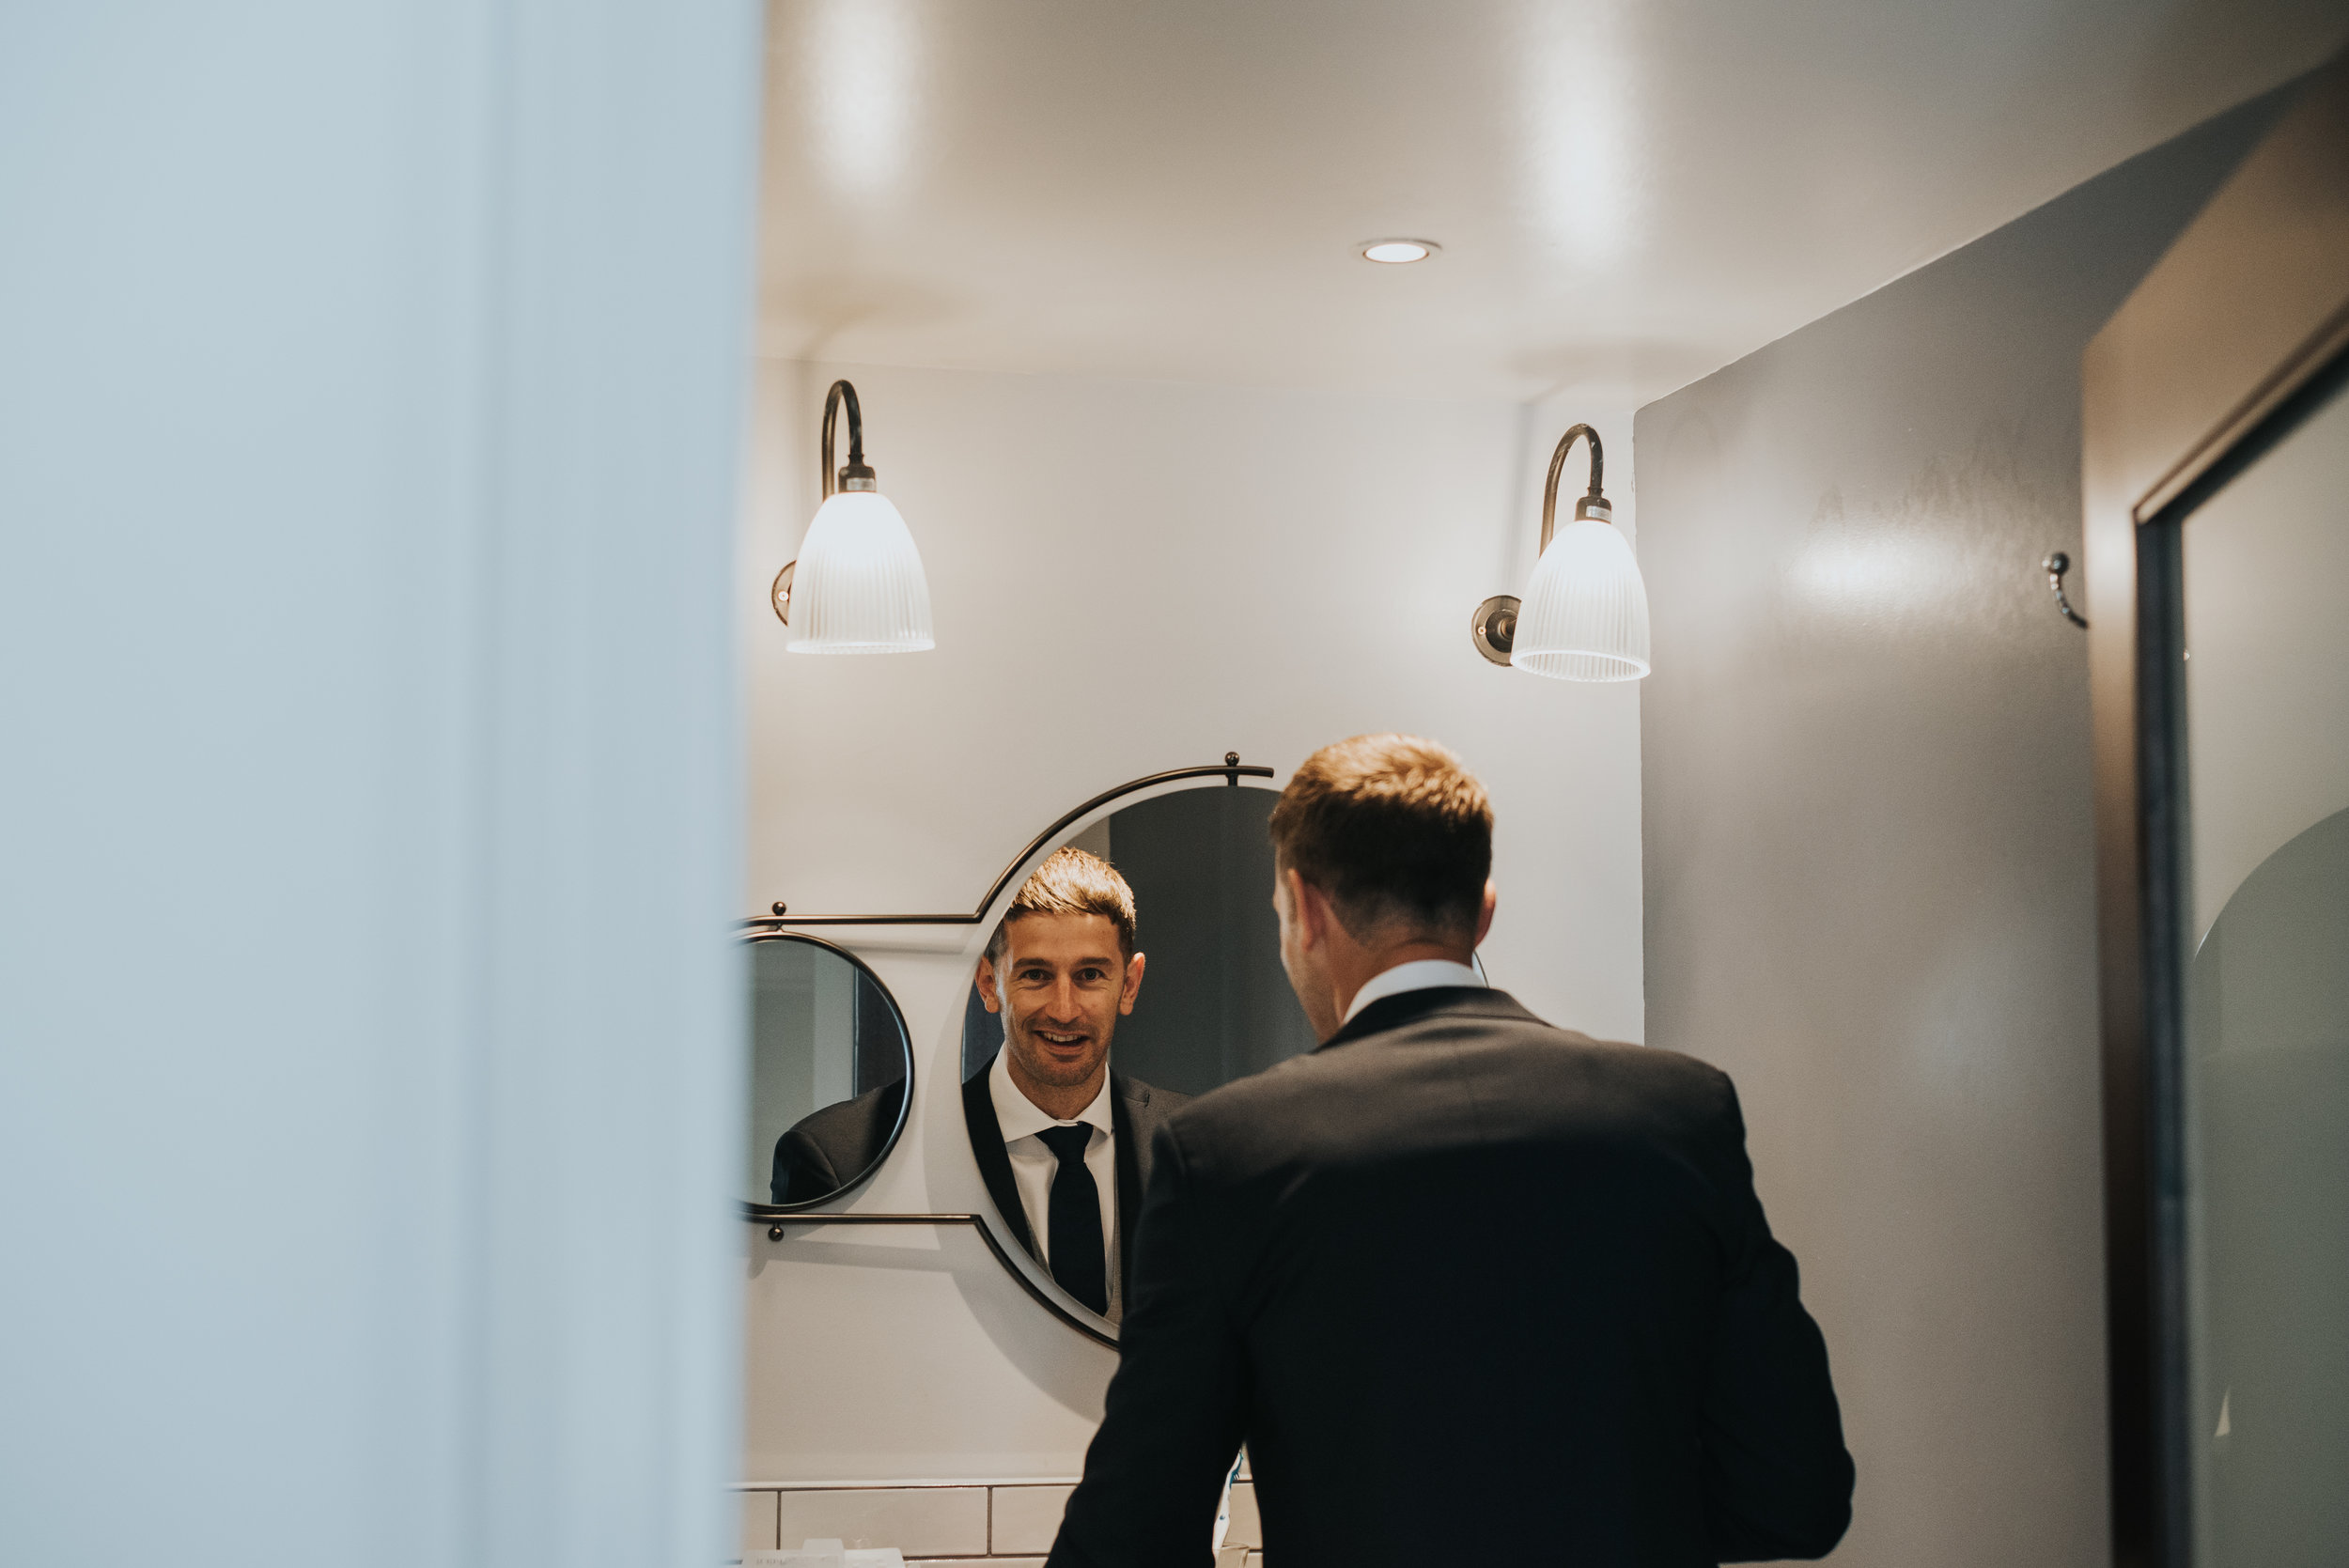 The groom catches the photographer snapping him in the bathroom mirror.